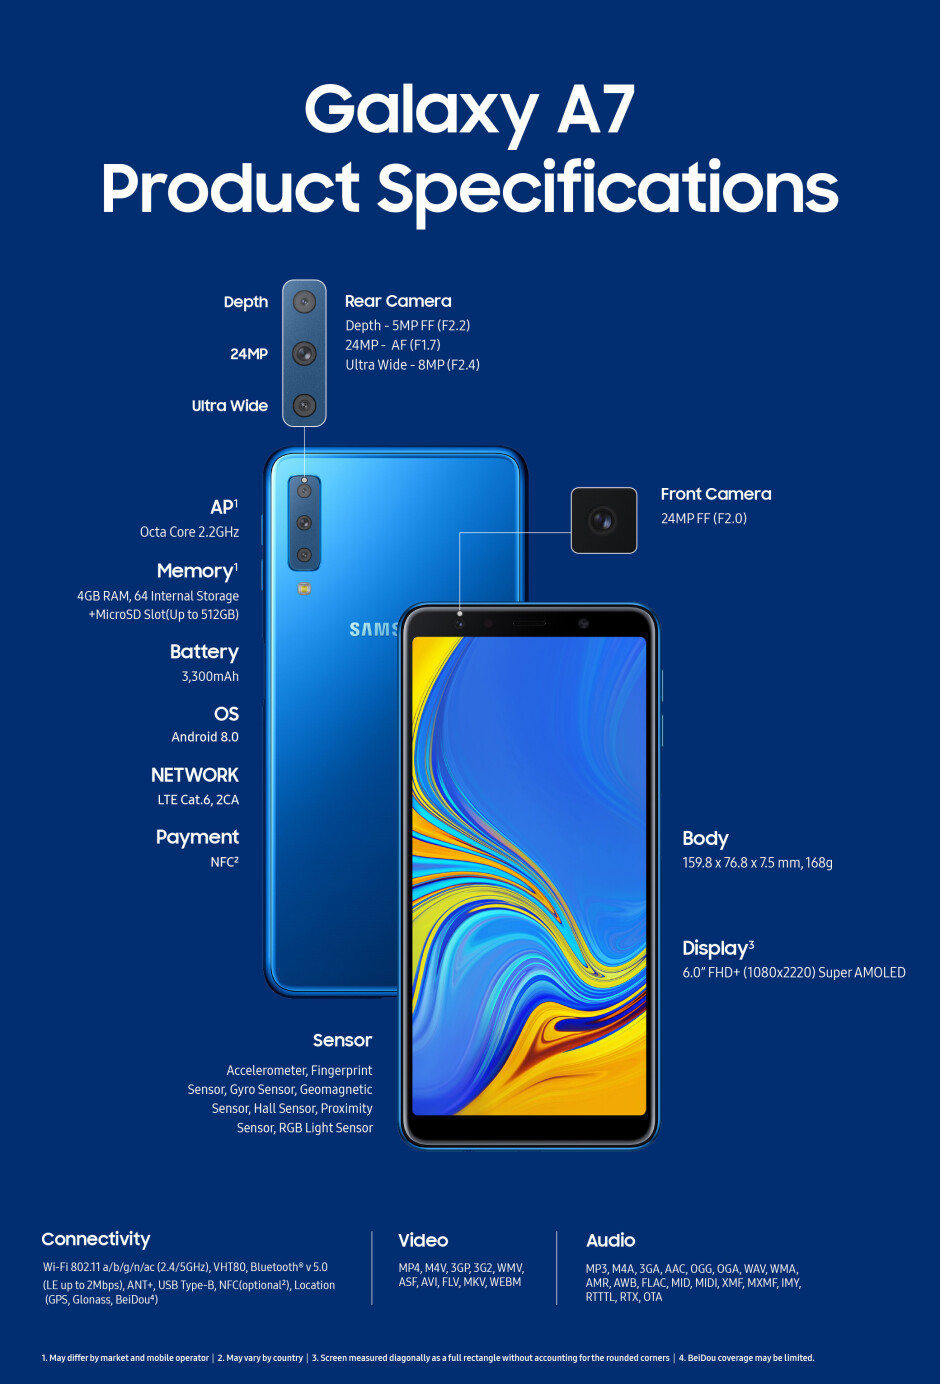 Galaxy A7 is official, Samsung's first triple-camera phone, a harbinger of Galaxy S10